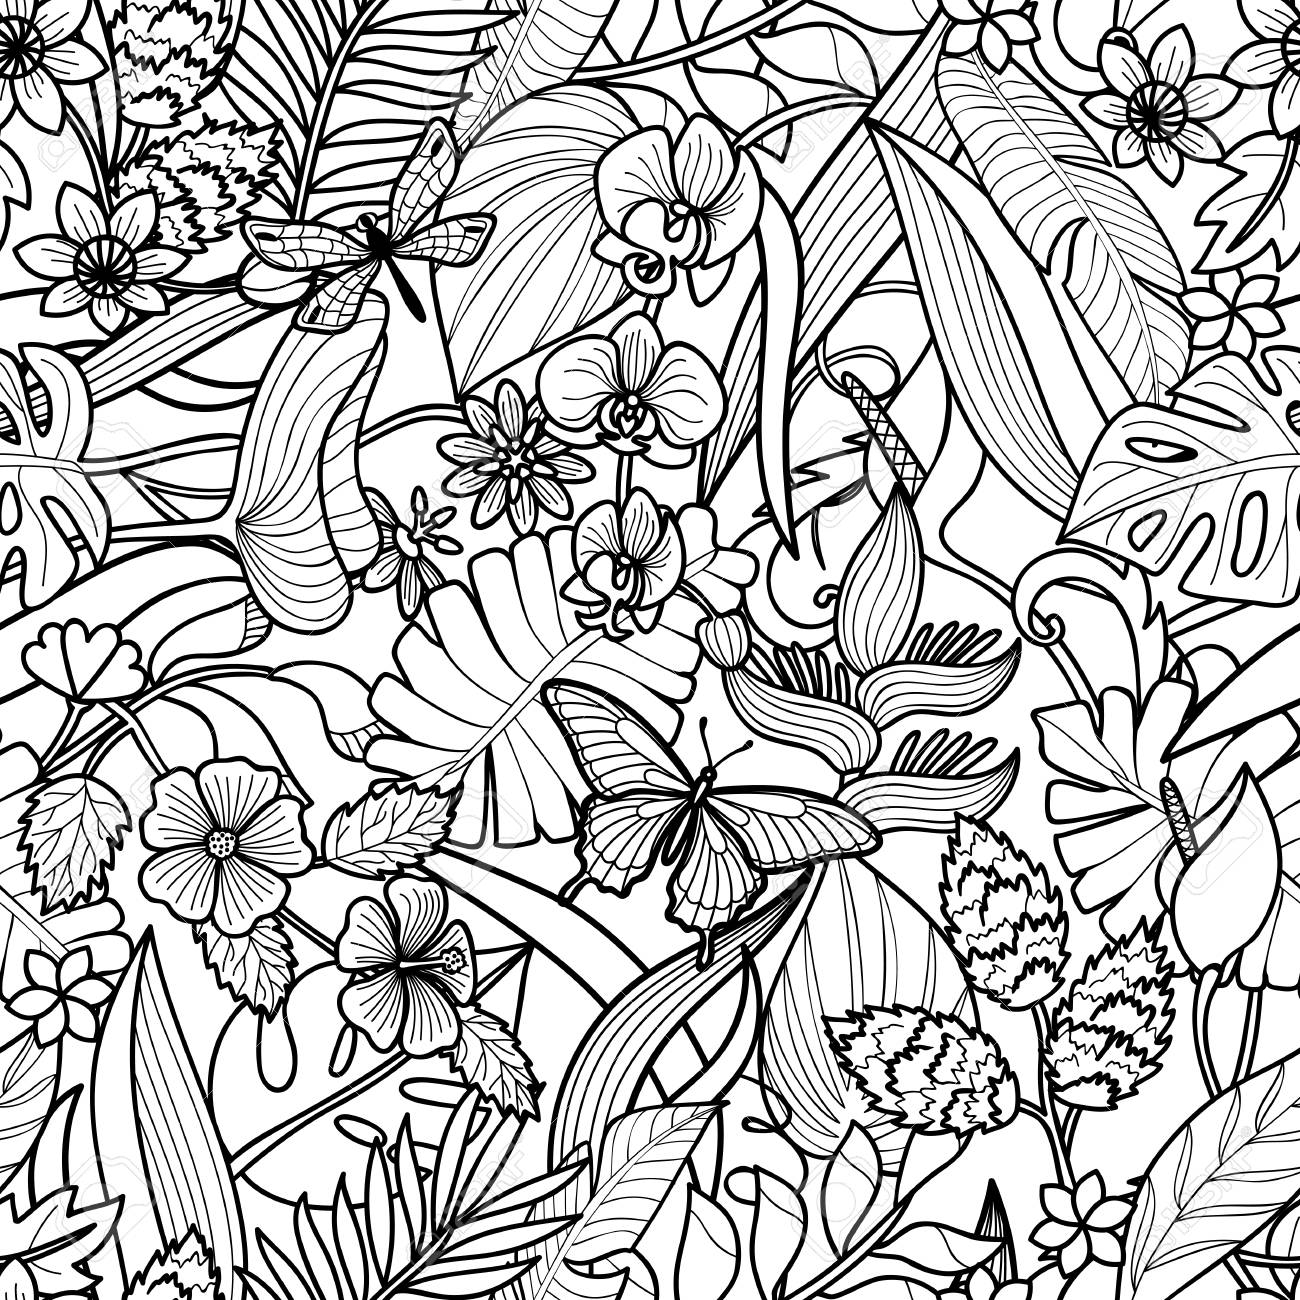 32 Tropical Flowers Coloring Pages Free Printable Coloring Pages Polish your personal project or design with these tropical leaves transparent png images, make it even more personalized and more attractive. 32 tropical flowers coloring pages